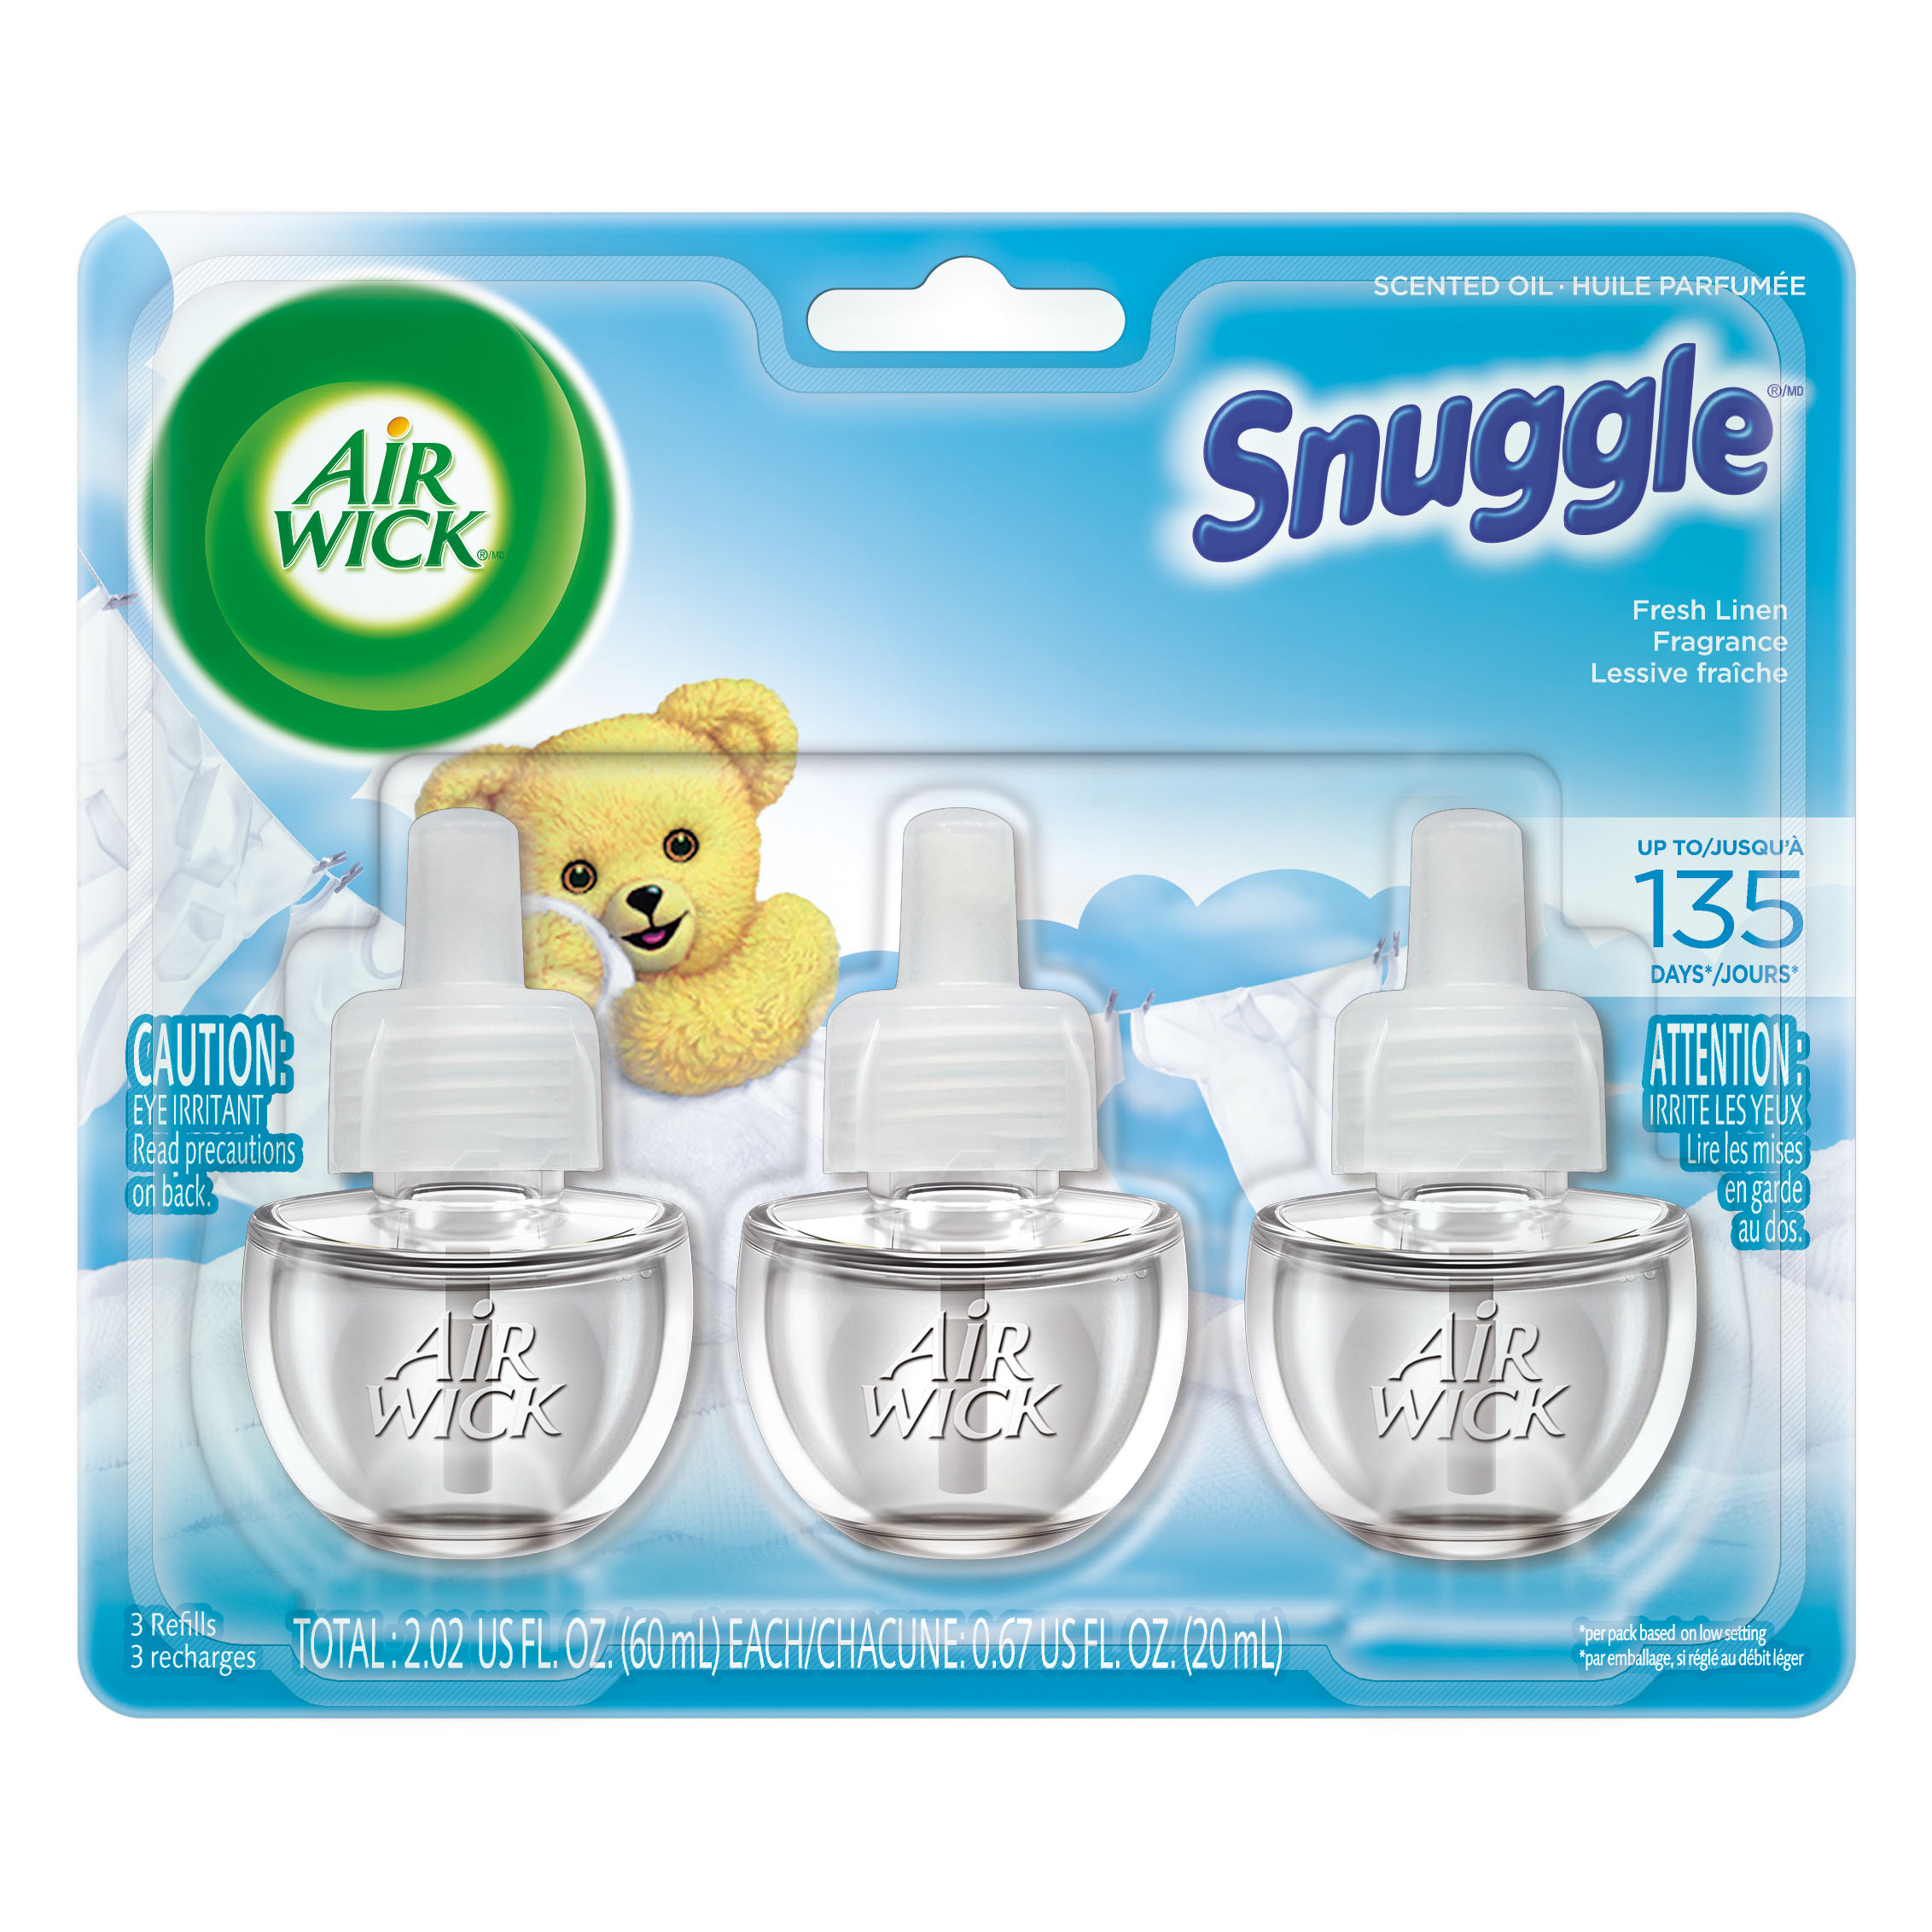 Air Wick Scented Oil 3 Refills, Snuggle Fresh Linen, (3X0.67oz), Air Freshener